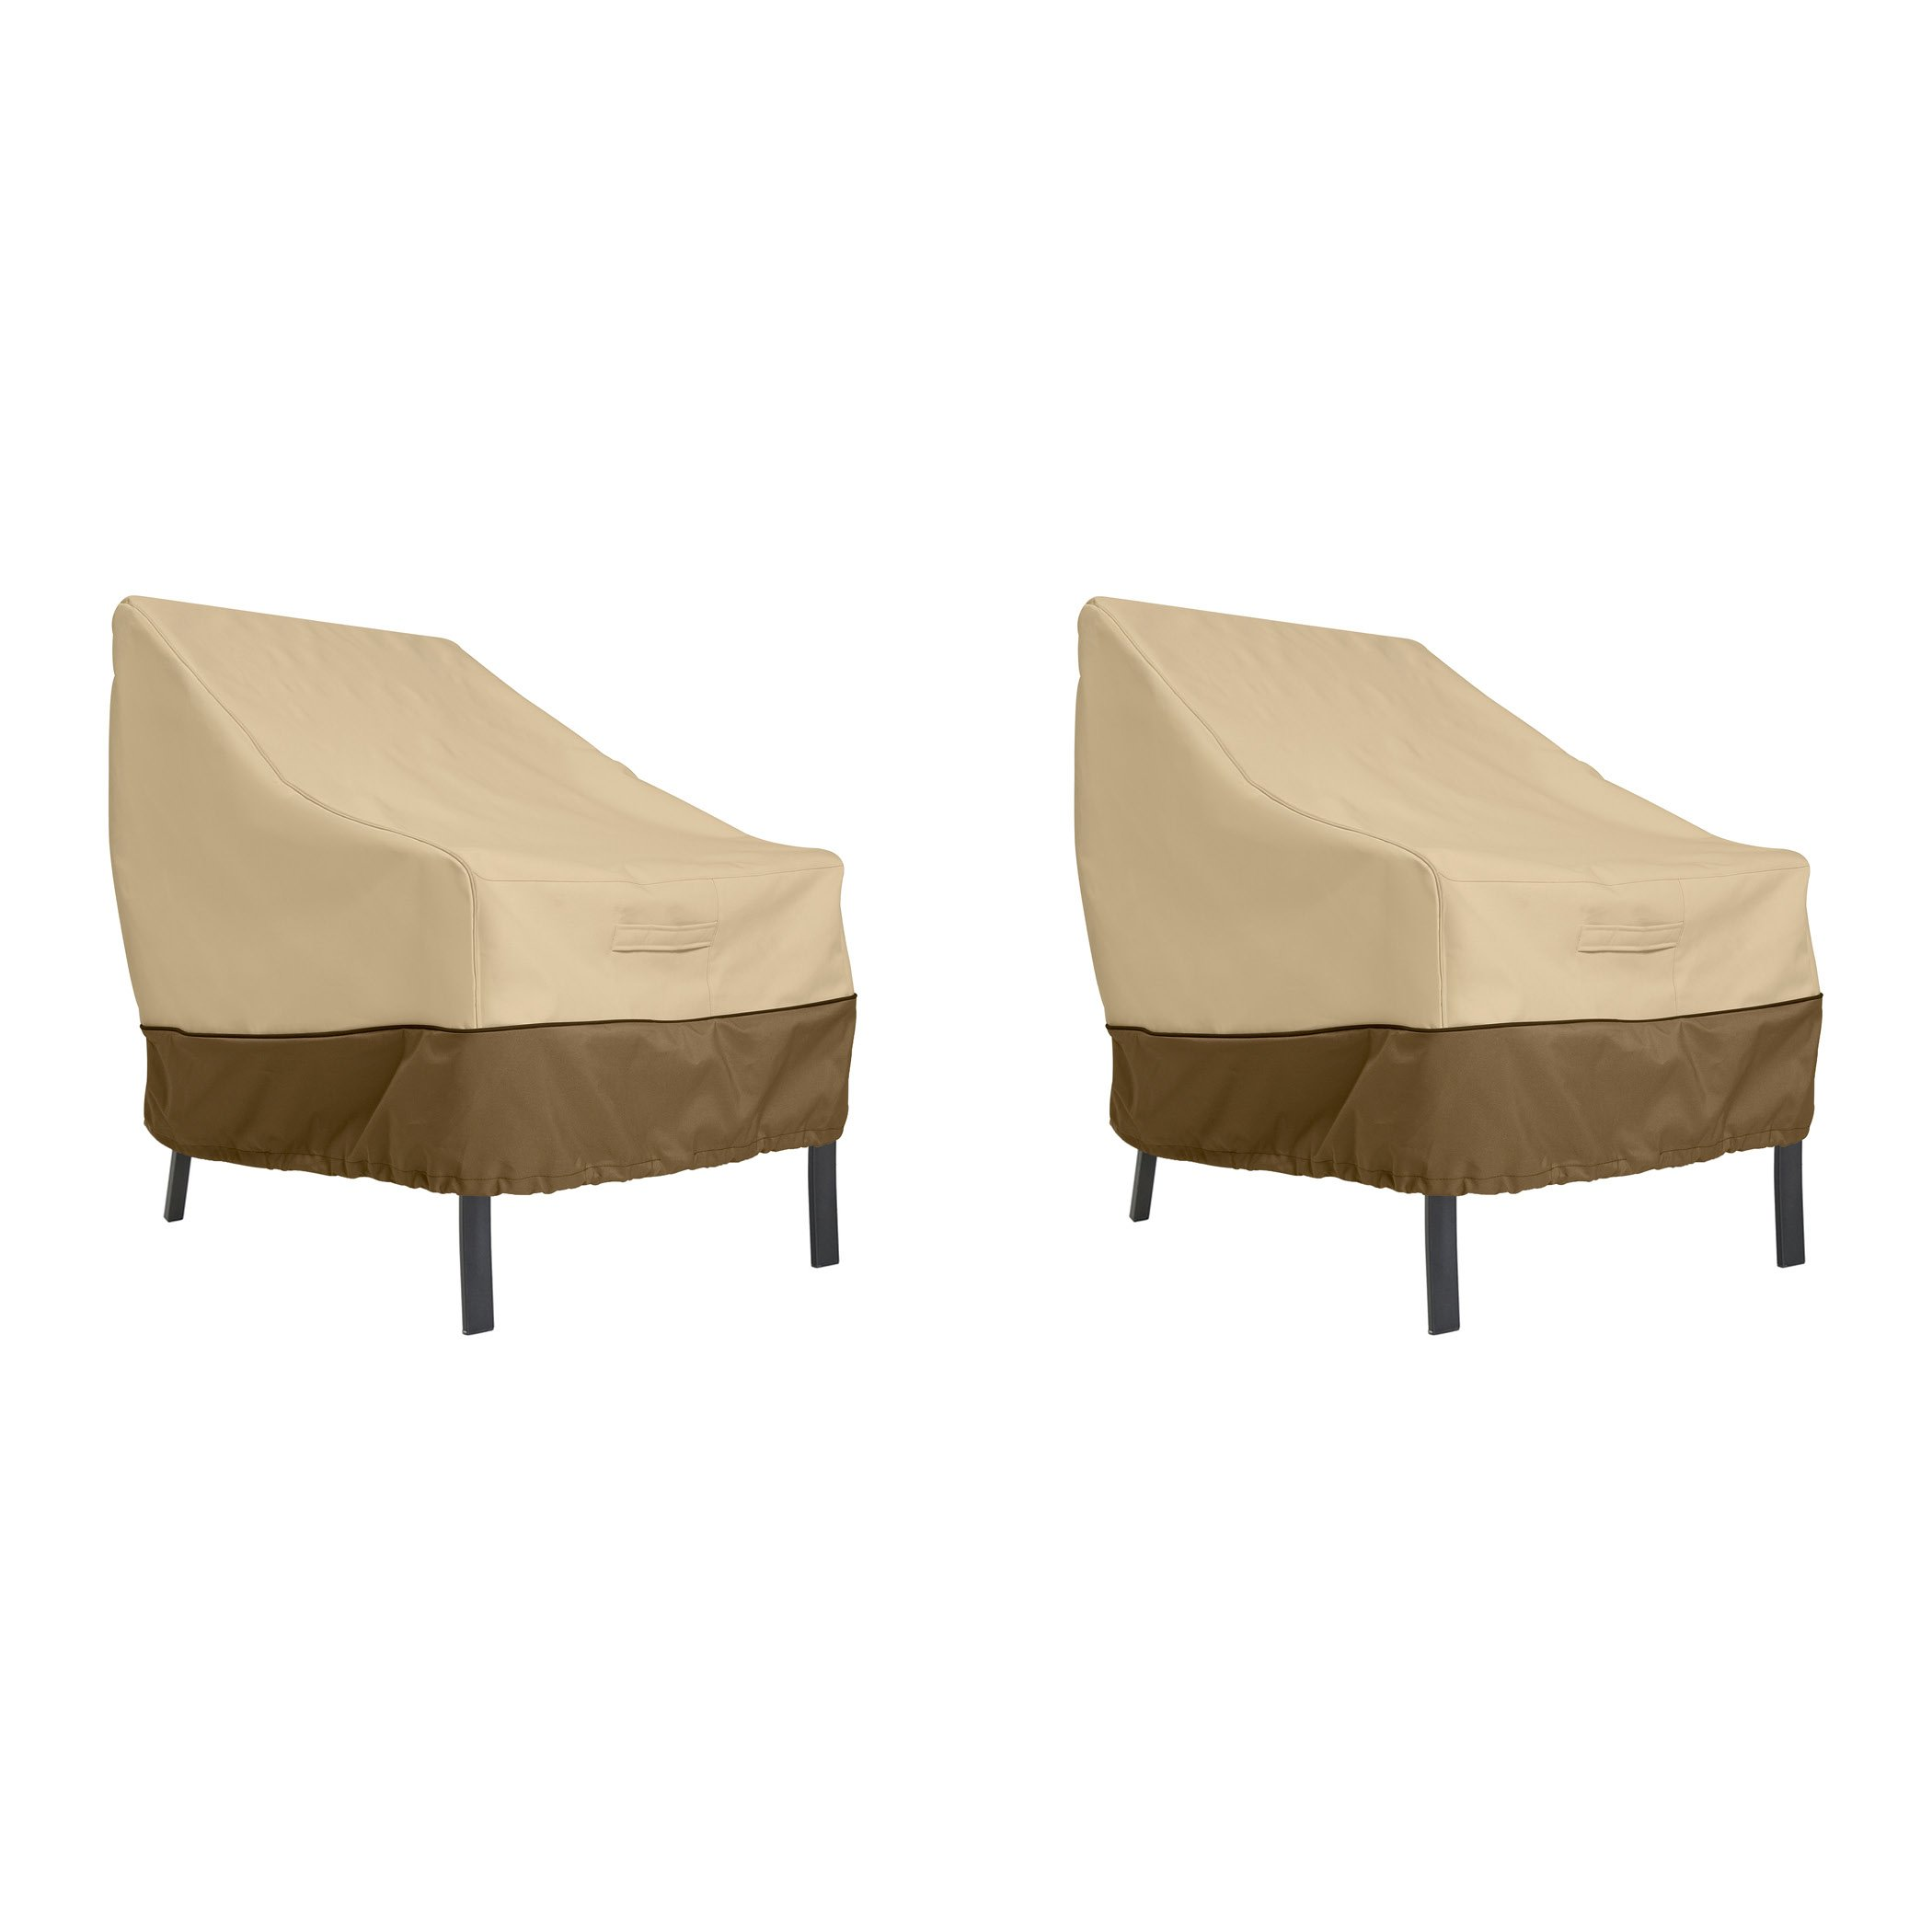 Classic Accessories 70912-2PK Veranda Patio Lounge Chair Cover, Large (2-Pack)